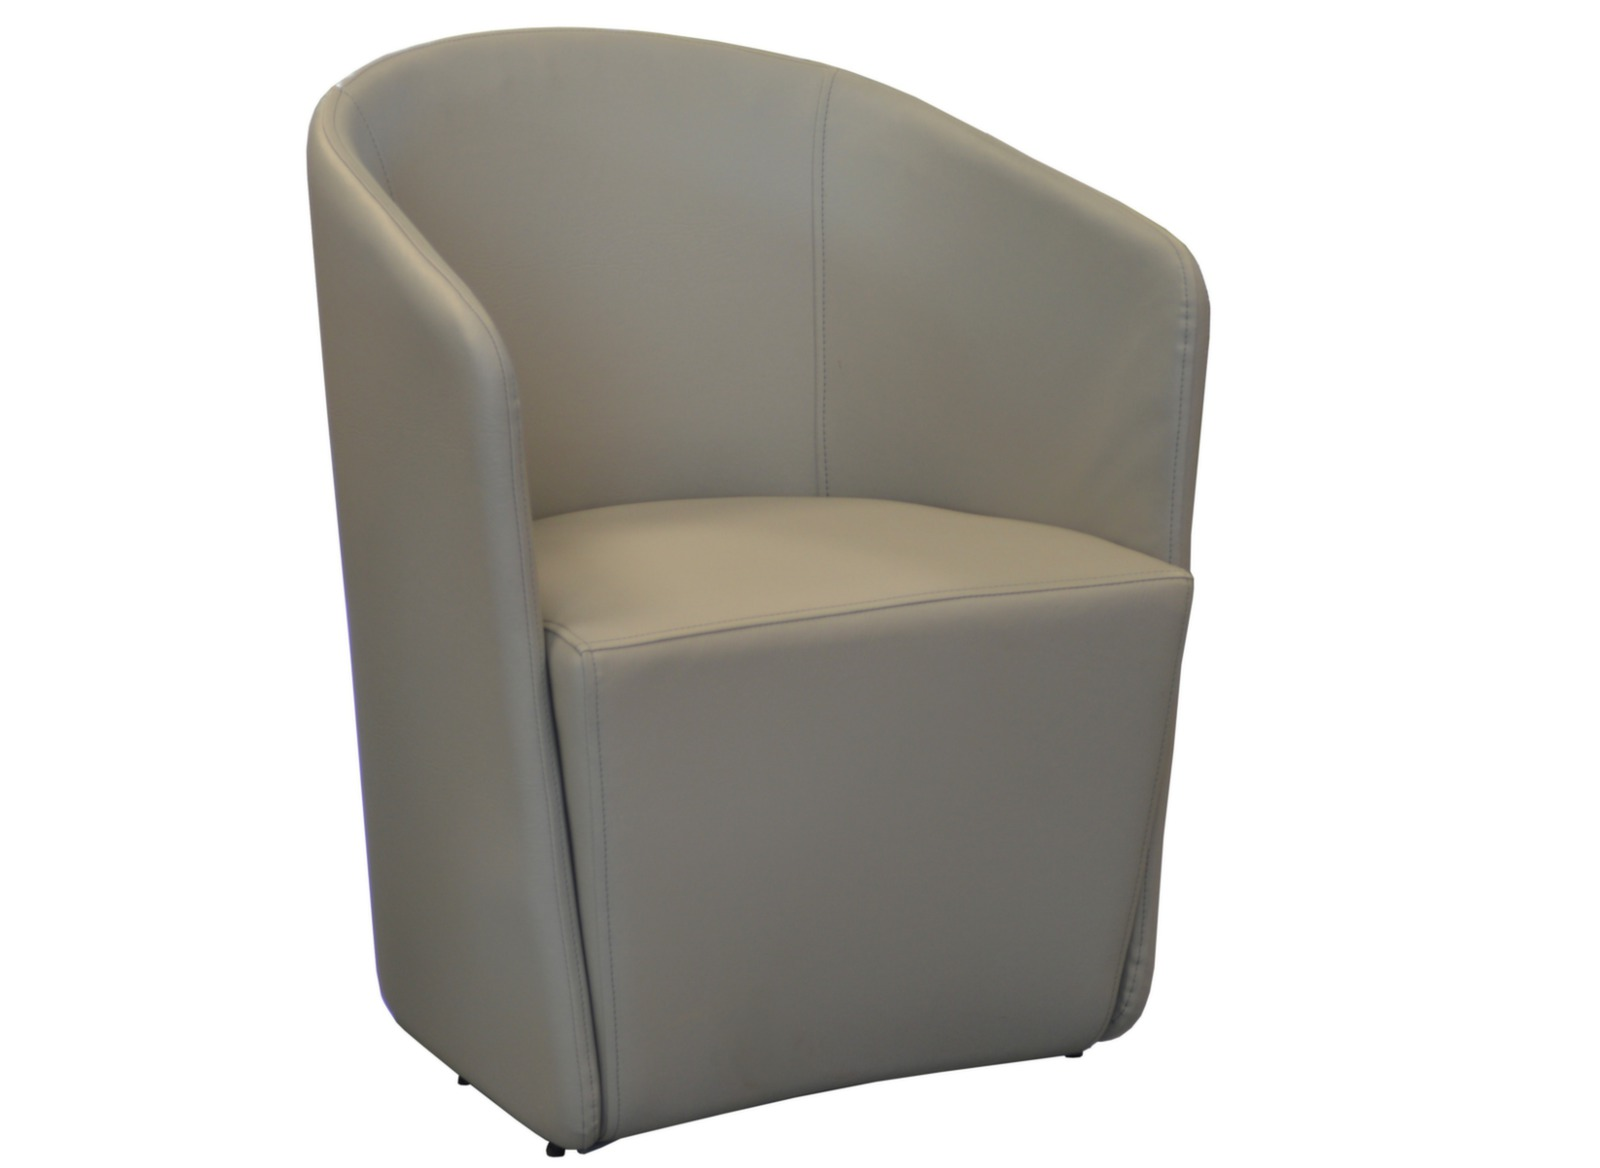 Fauteuil repas Thebes